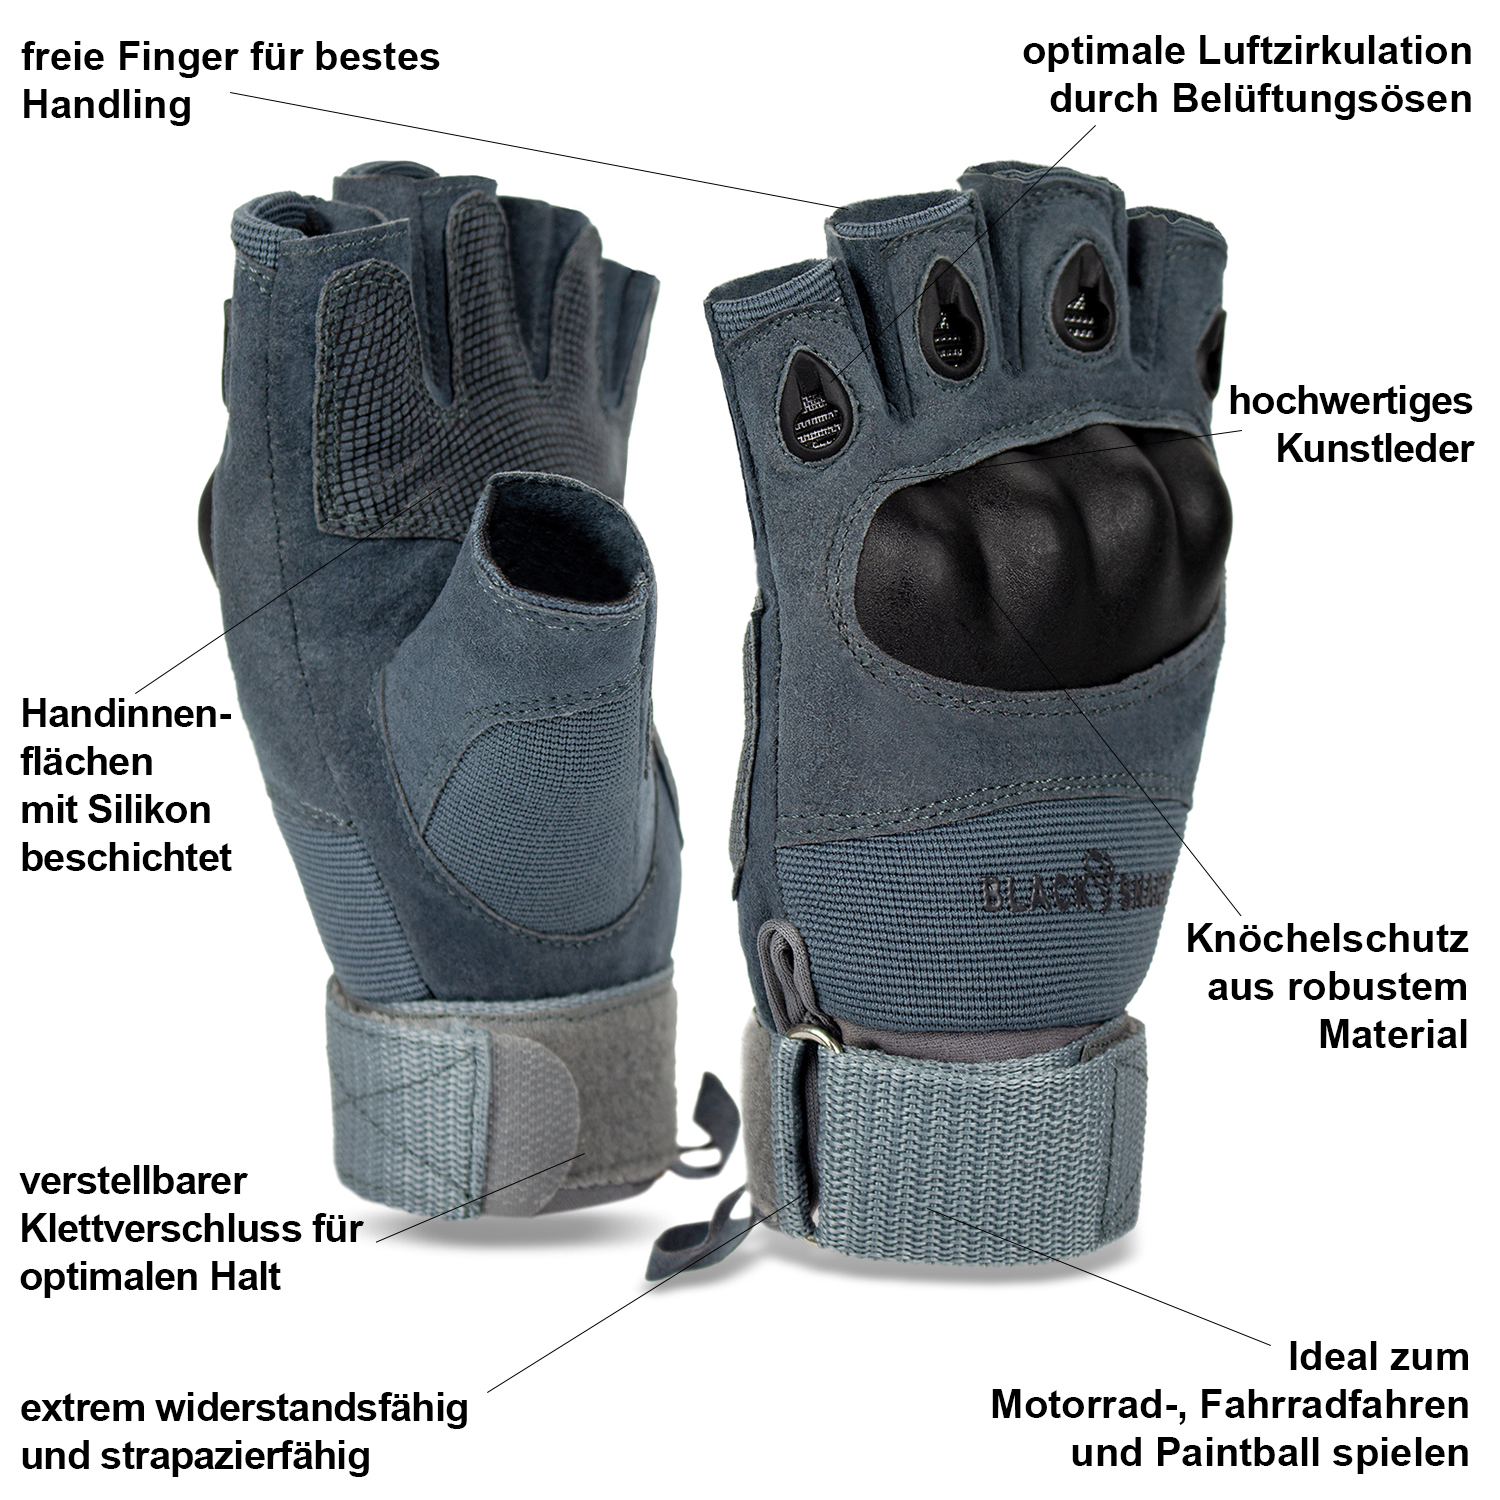 Paintball Halbfinger Handschuhe Tactical Knöchelschutz Softair Gloves Jagd